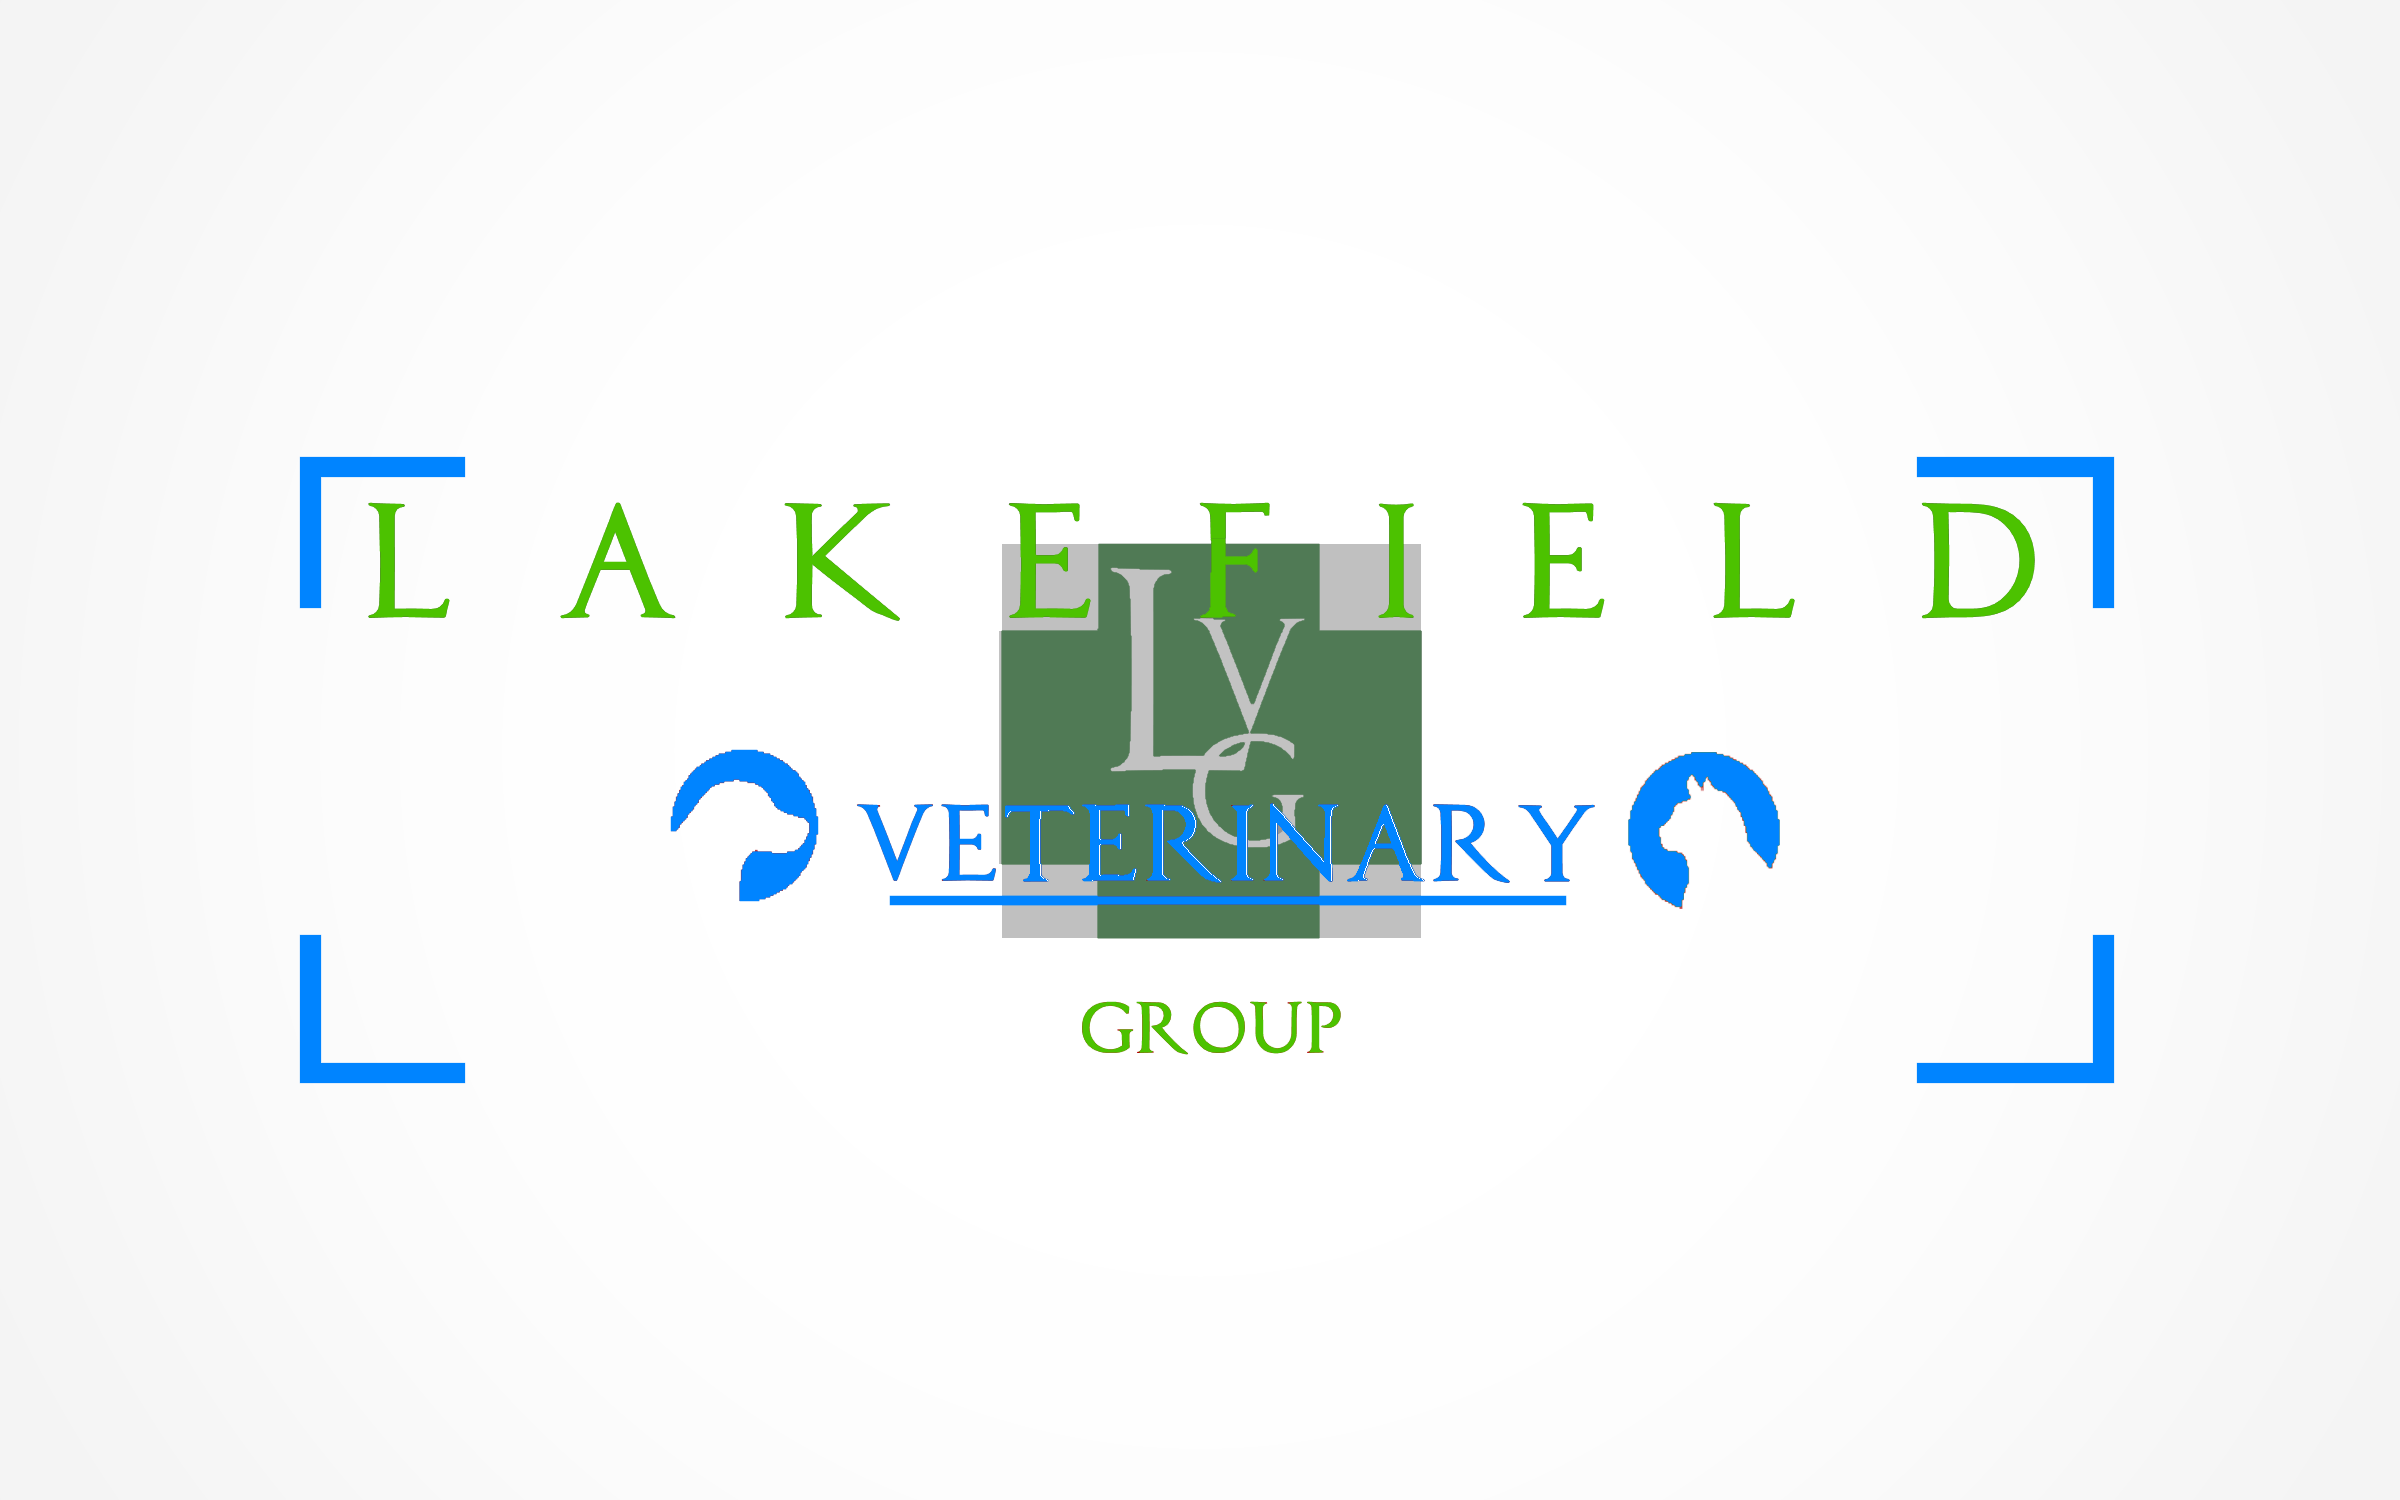 Logo Design by Roberto Bassi - Entry No. 23 in the Logo Design Contest Inspiring Logo Design for Lakefield Veterinary Group.